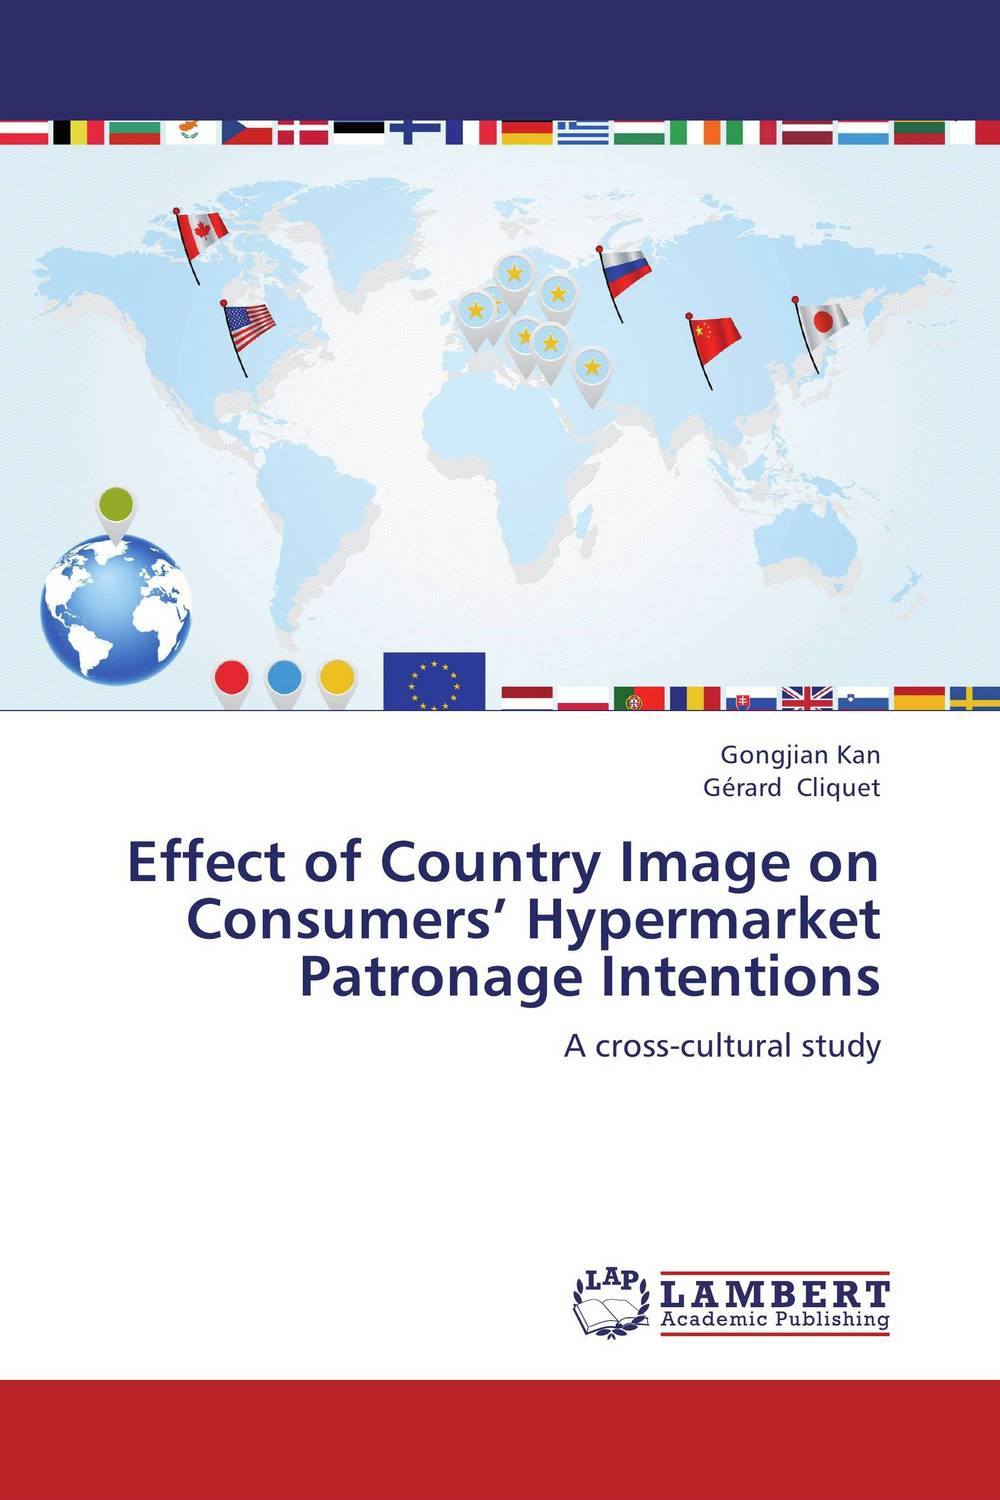 Effect of Country Image on Consumers' Hypermarket Patronage Intentions